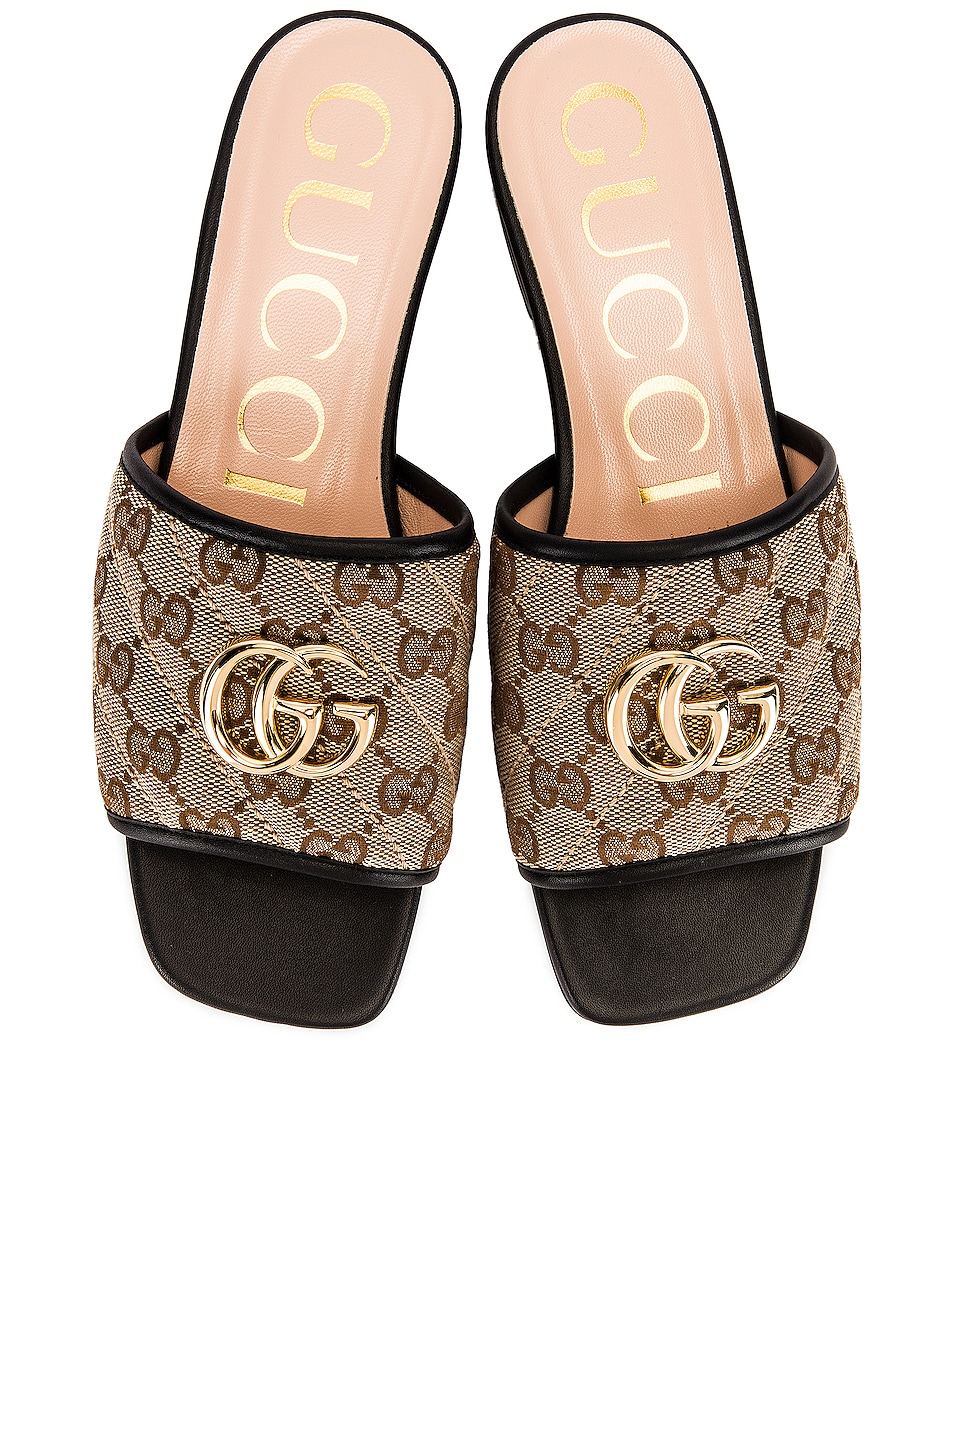 Image 1 of Gucci Jolie Slides in Beige Ebony & Nero